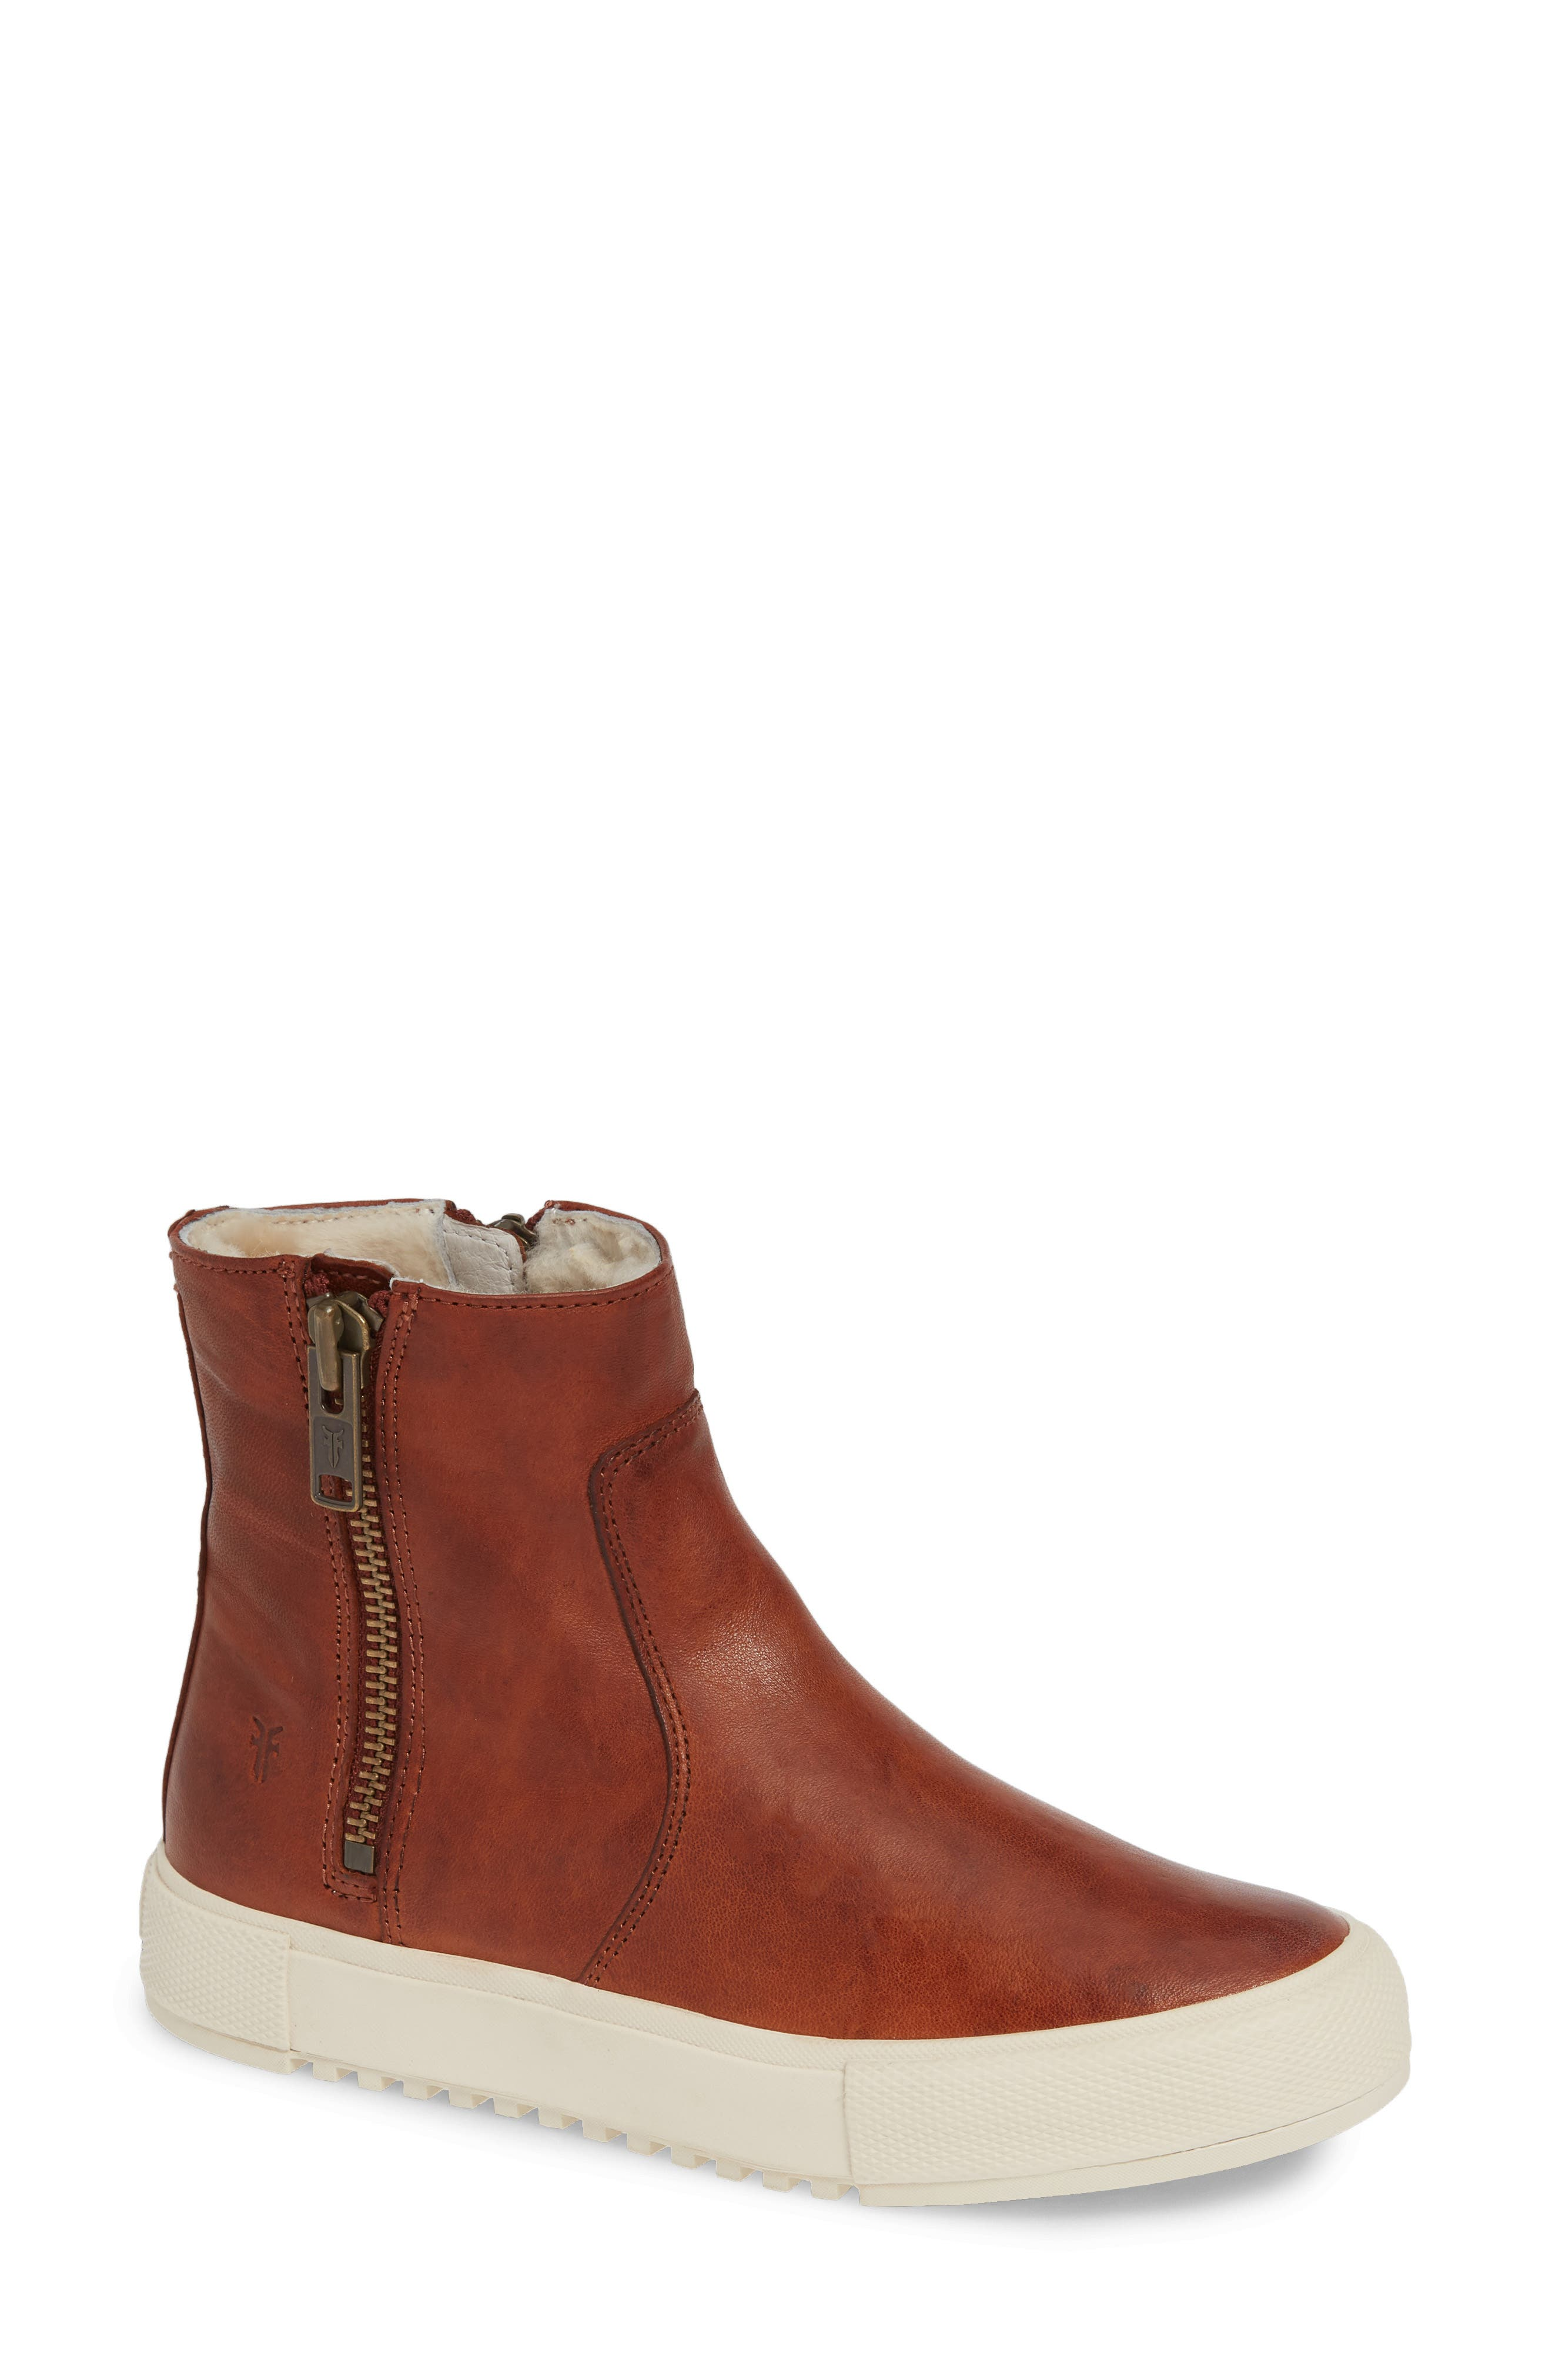 Gia Genuine Shearling Lined Bootie in Cognac Leather